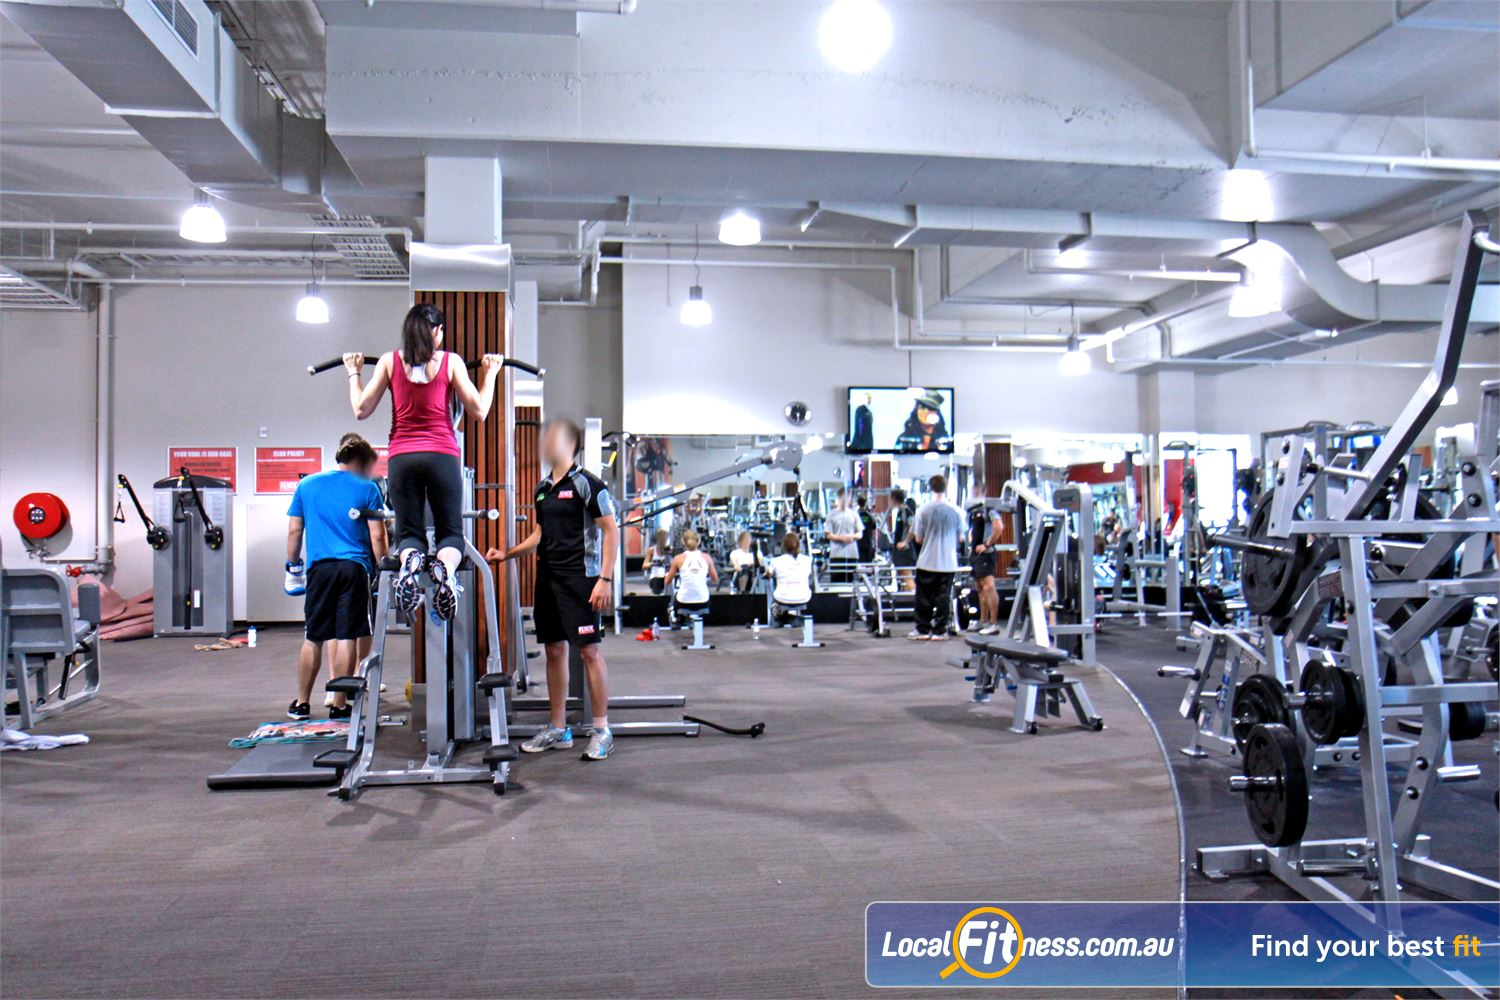 Goodlife Health Clubs Near Robina Town Centre Our Robina gym includes state of the art equipment. <br /><br /><br />